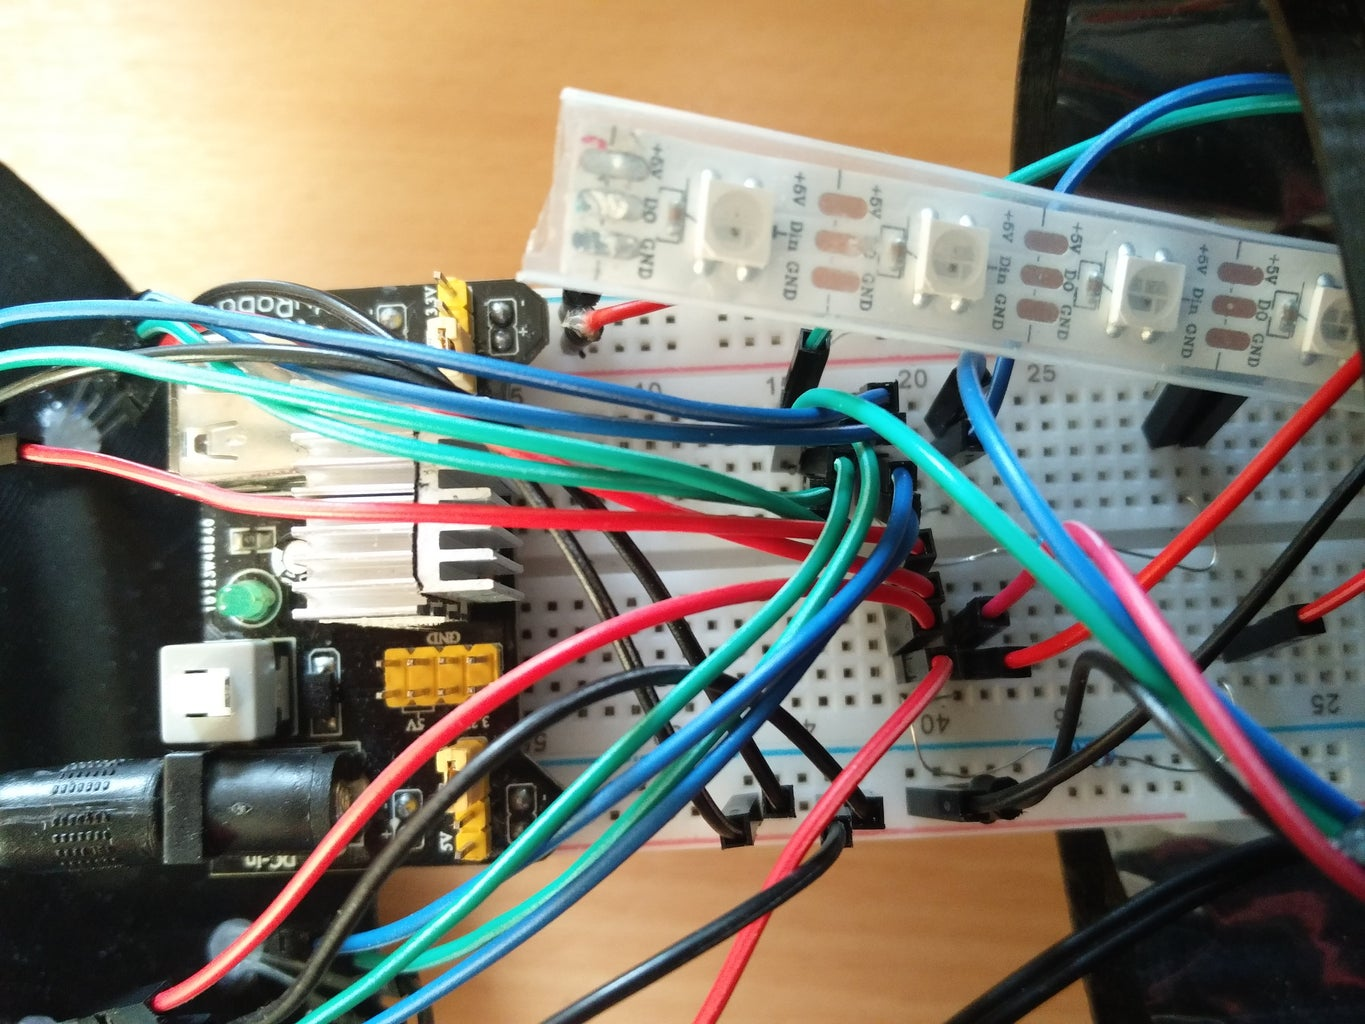 Assembling the Components (testing Phase)